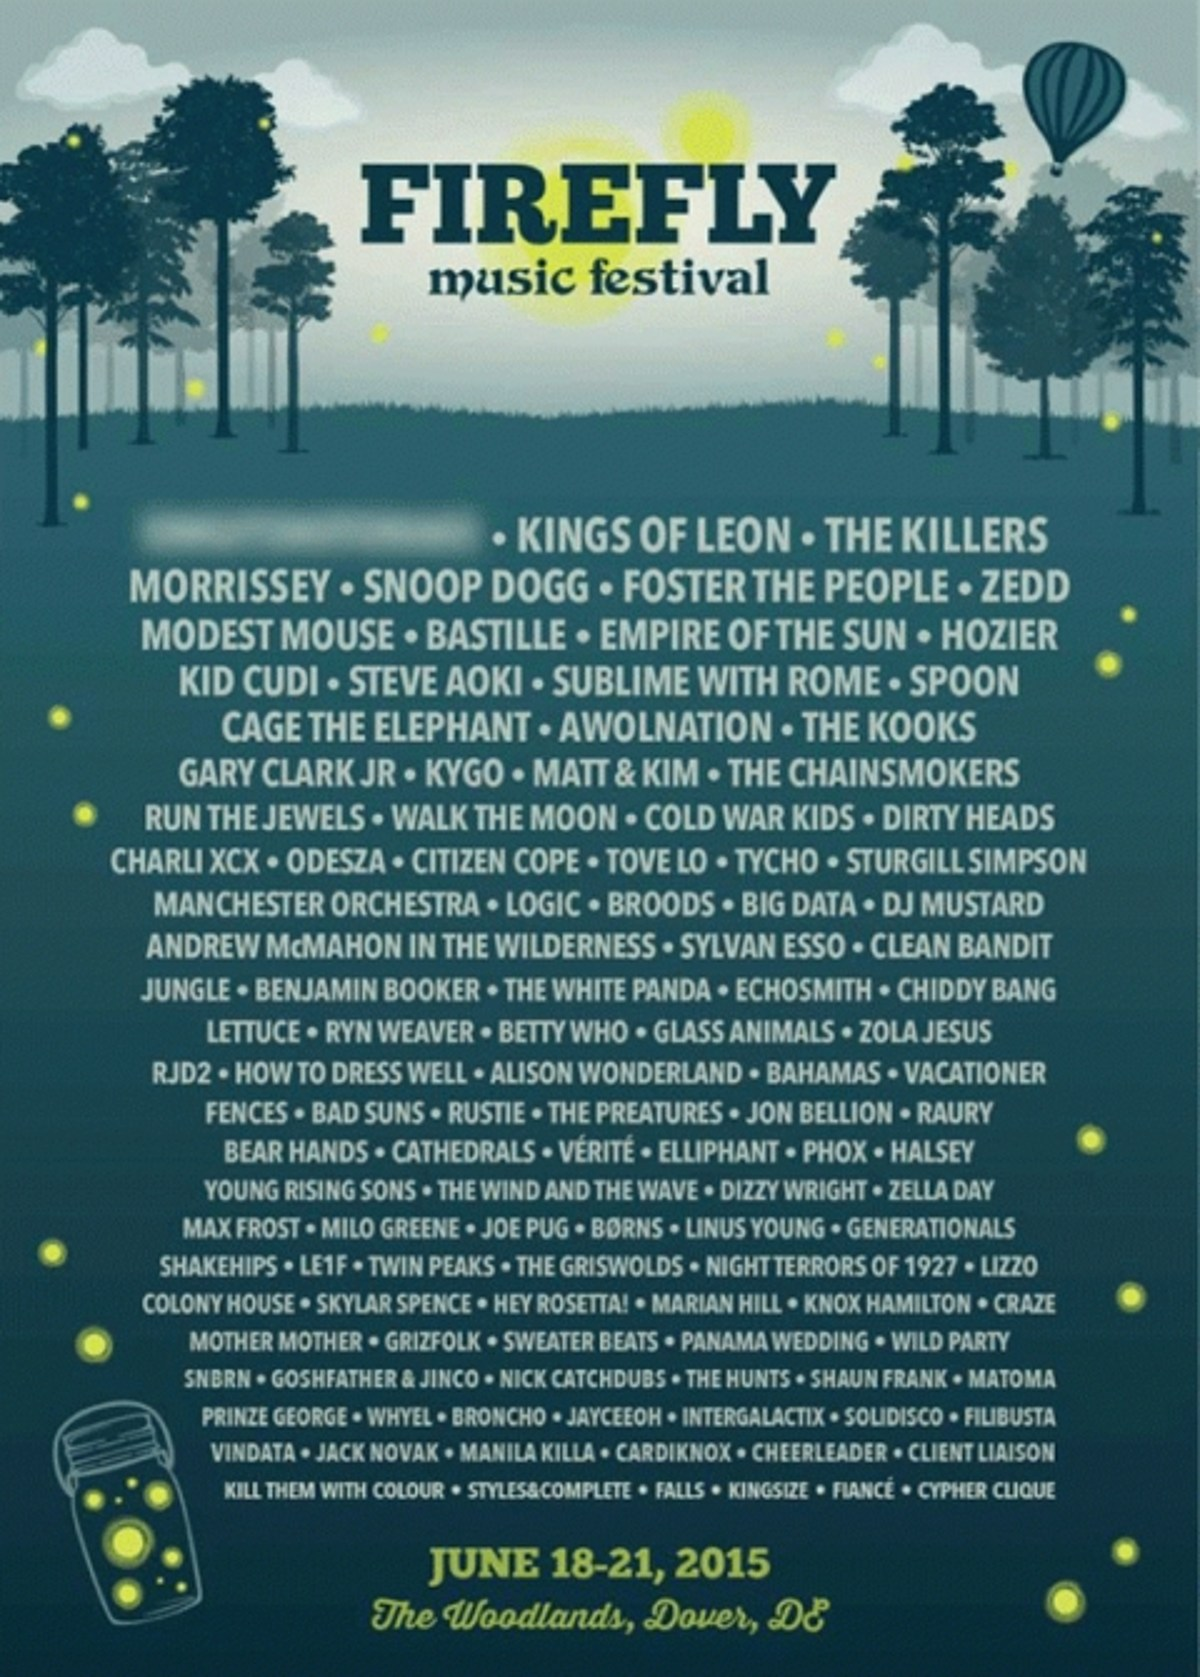 225a82860173 Firefly Music Festival 2015 lineup (Kings of Leon, The Killers, Morrissey,  Modest Mouse, Spoon, Run the Jewels & more)